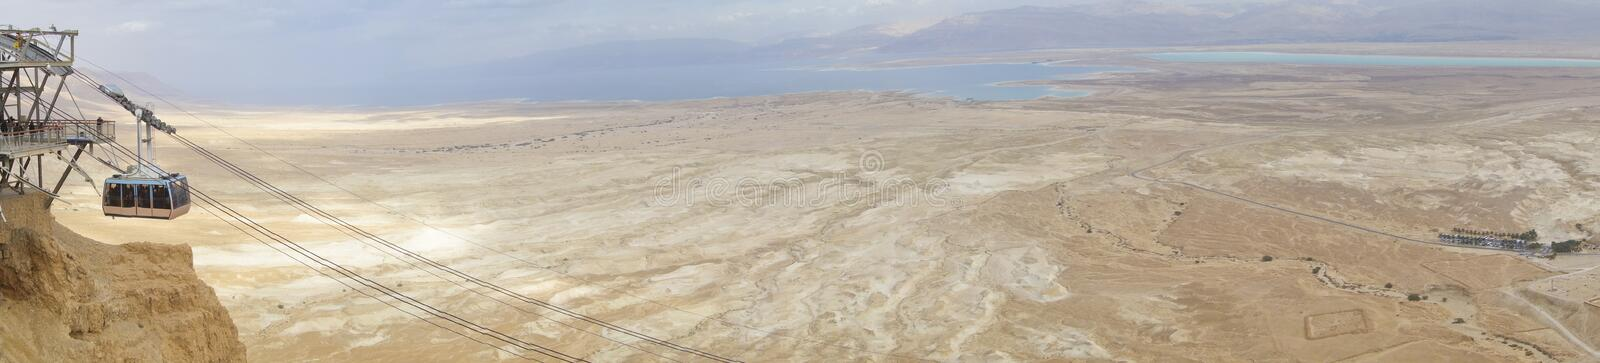 Dead Sea During Winter with Masada Tram royalty free stock photo